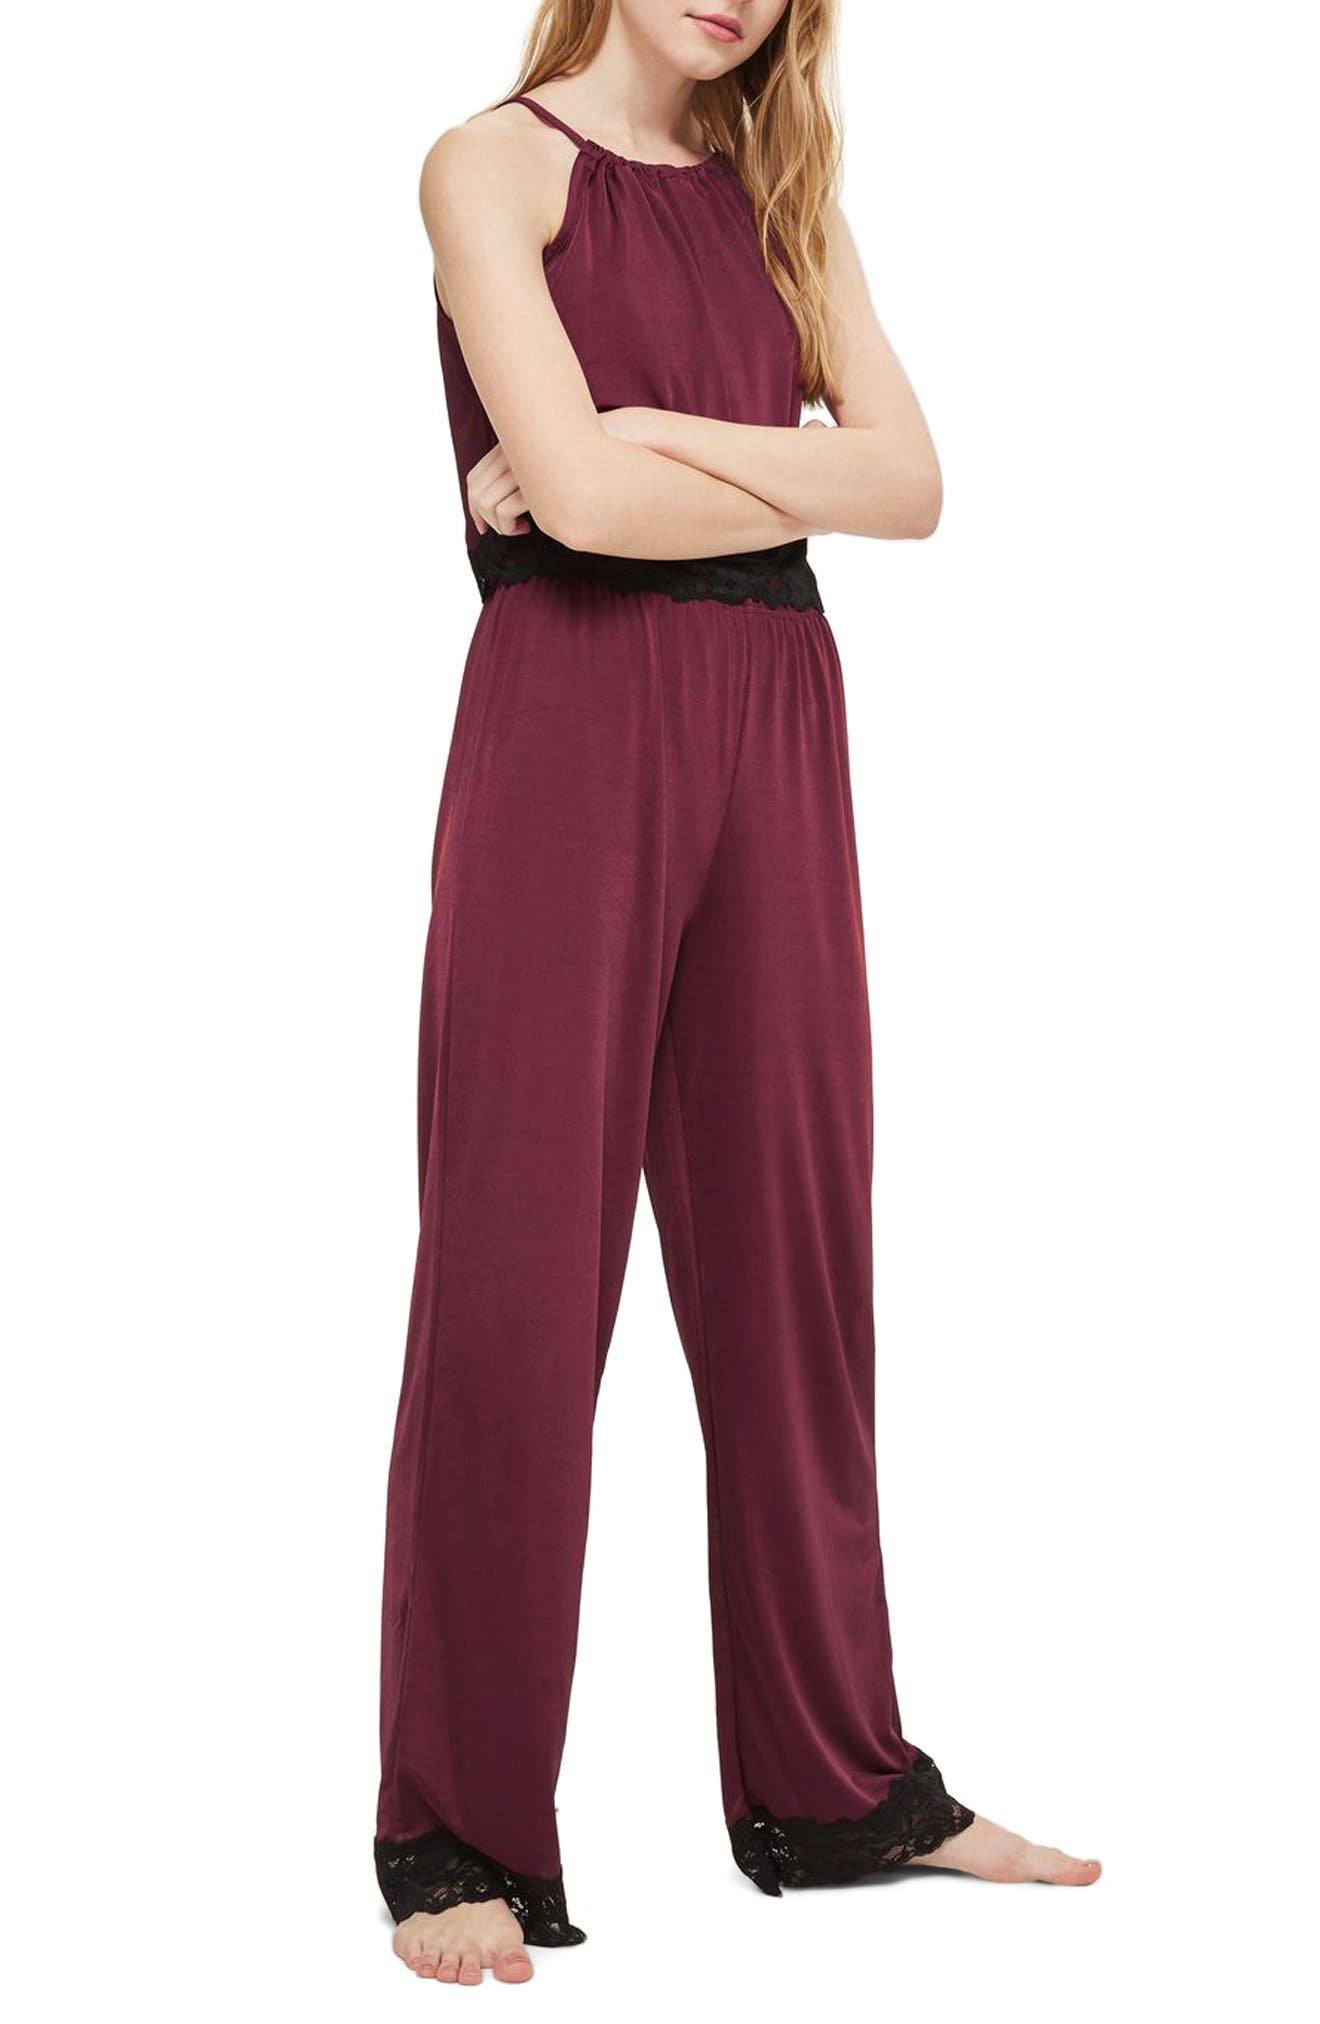 Jersey Satin & Lace Pajama Pants,                             Main thumbnail 1, color,                             930